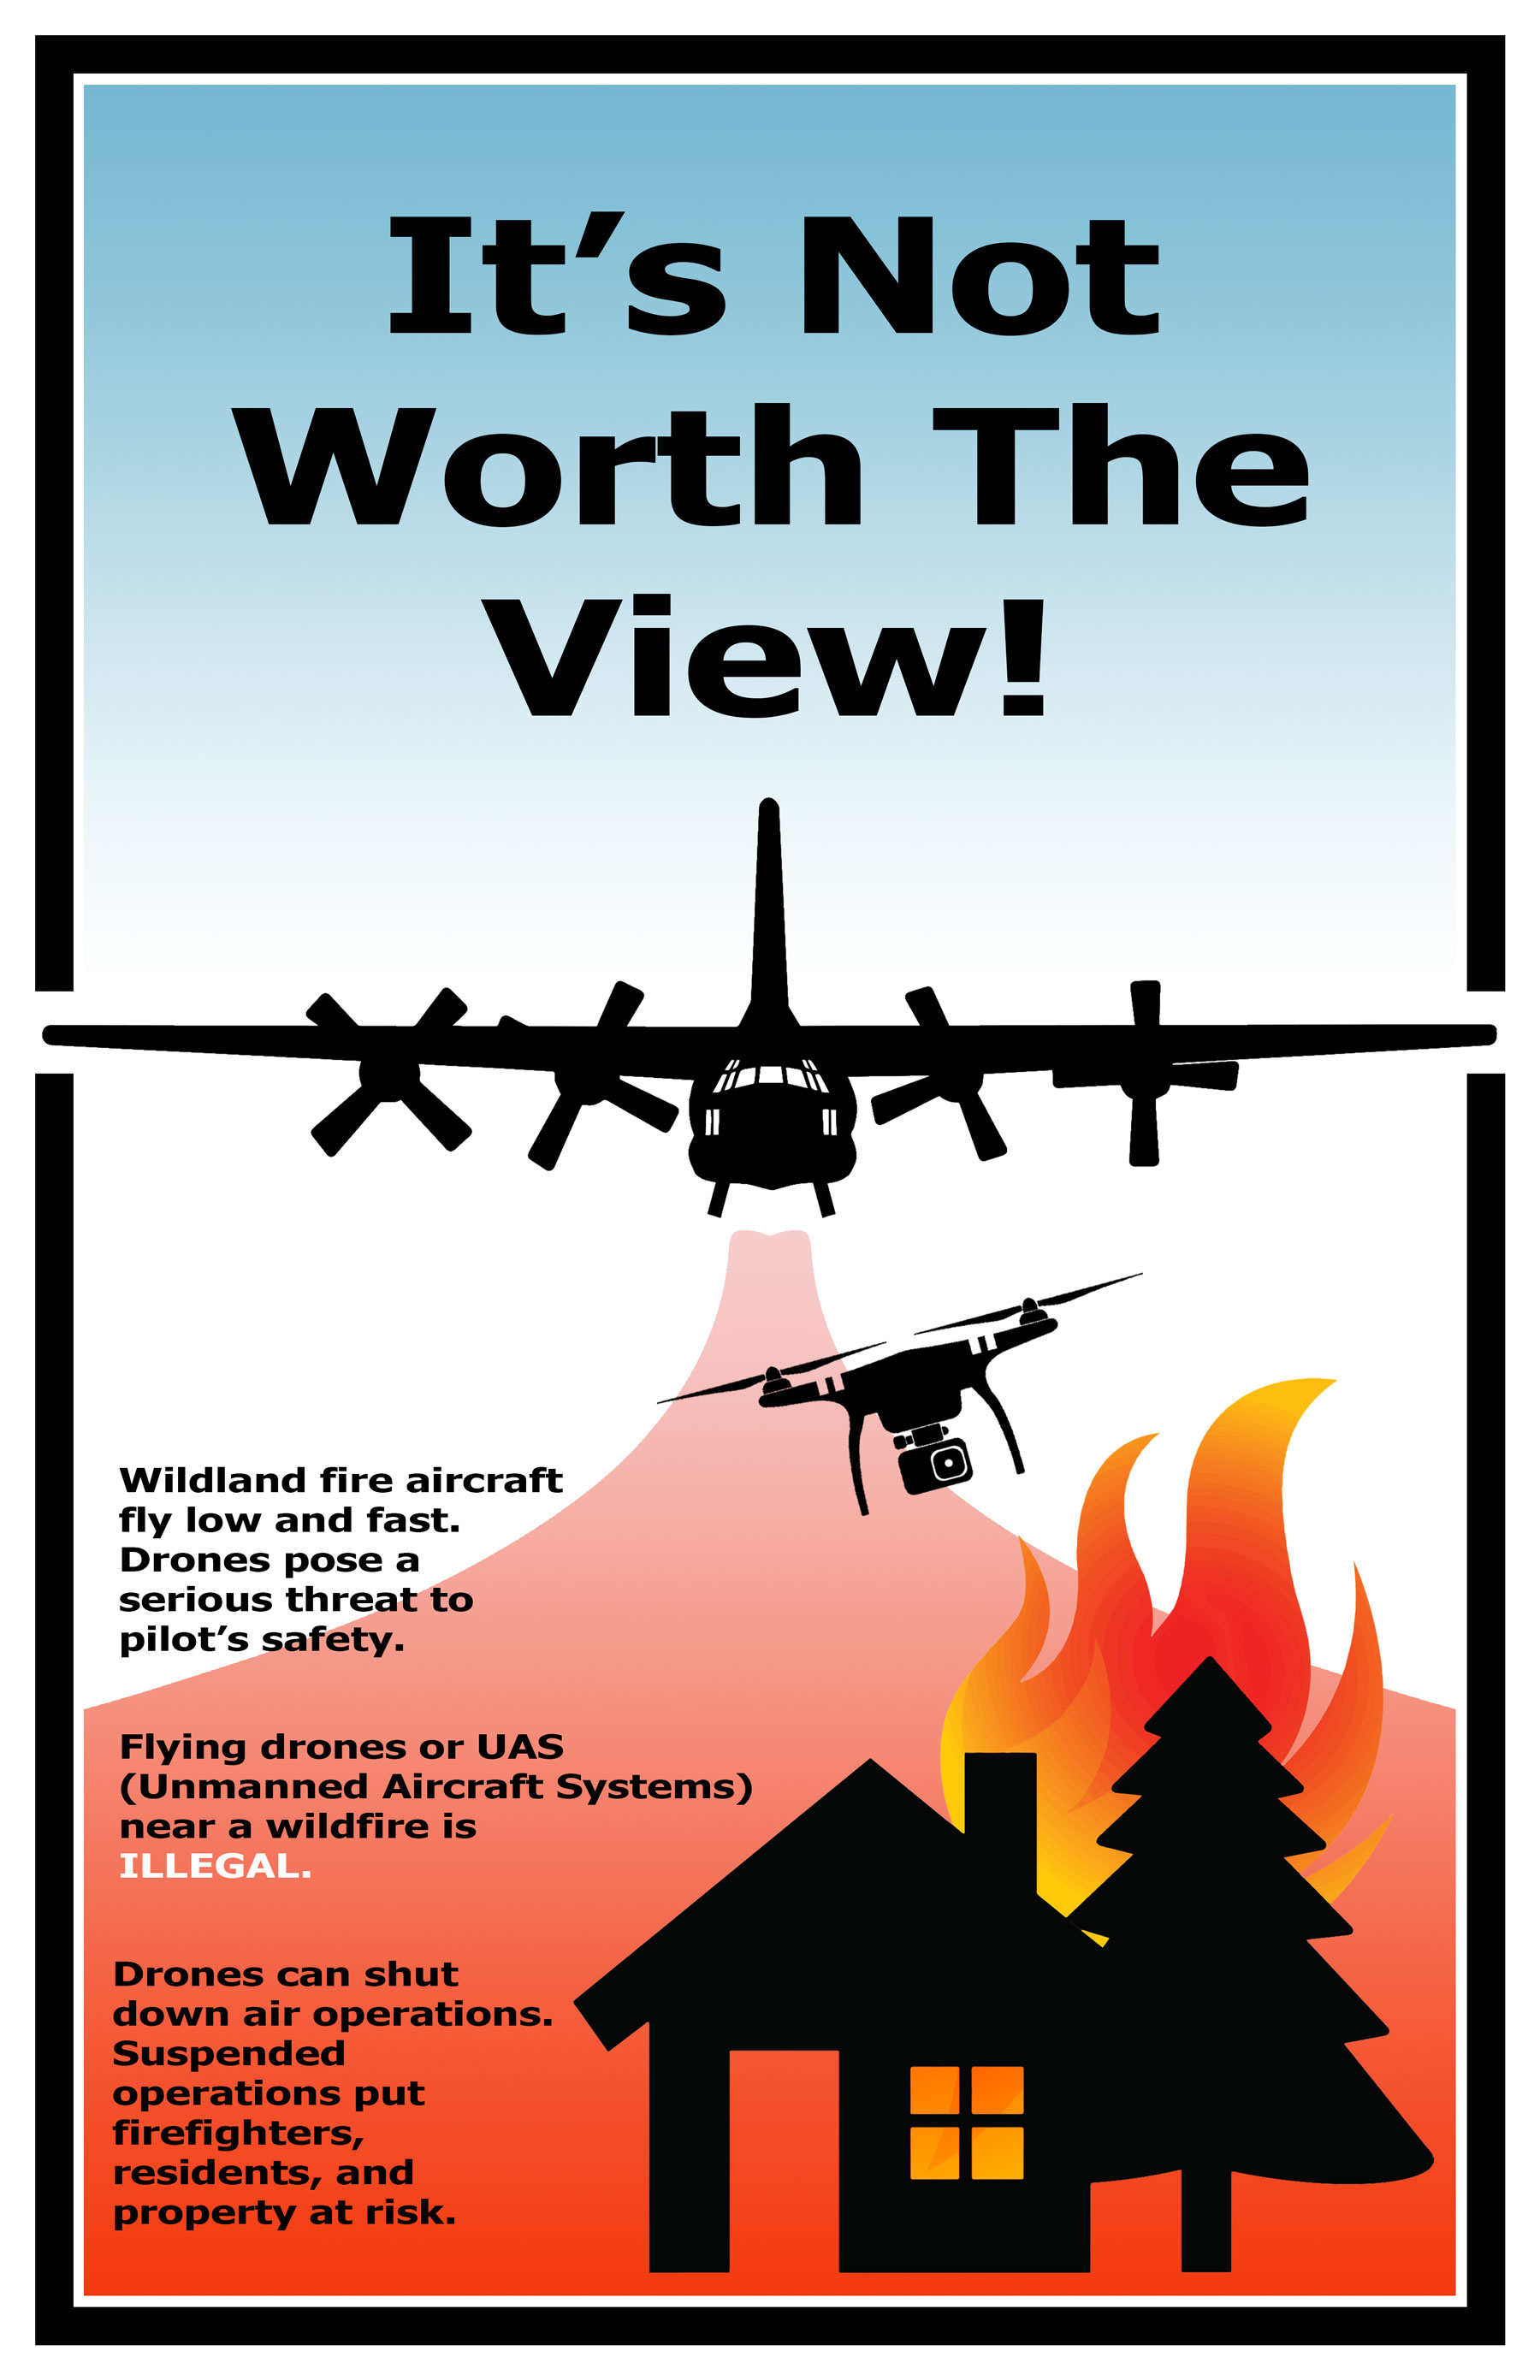 Poster warning about dangers of flying drones near wildfires